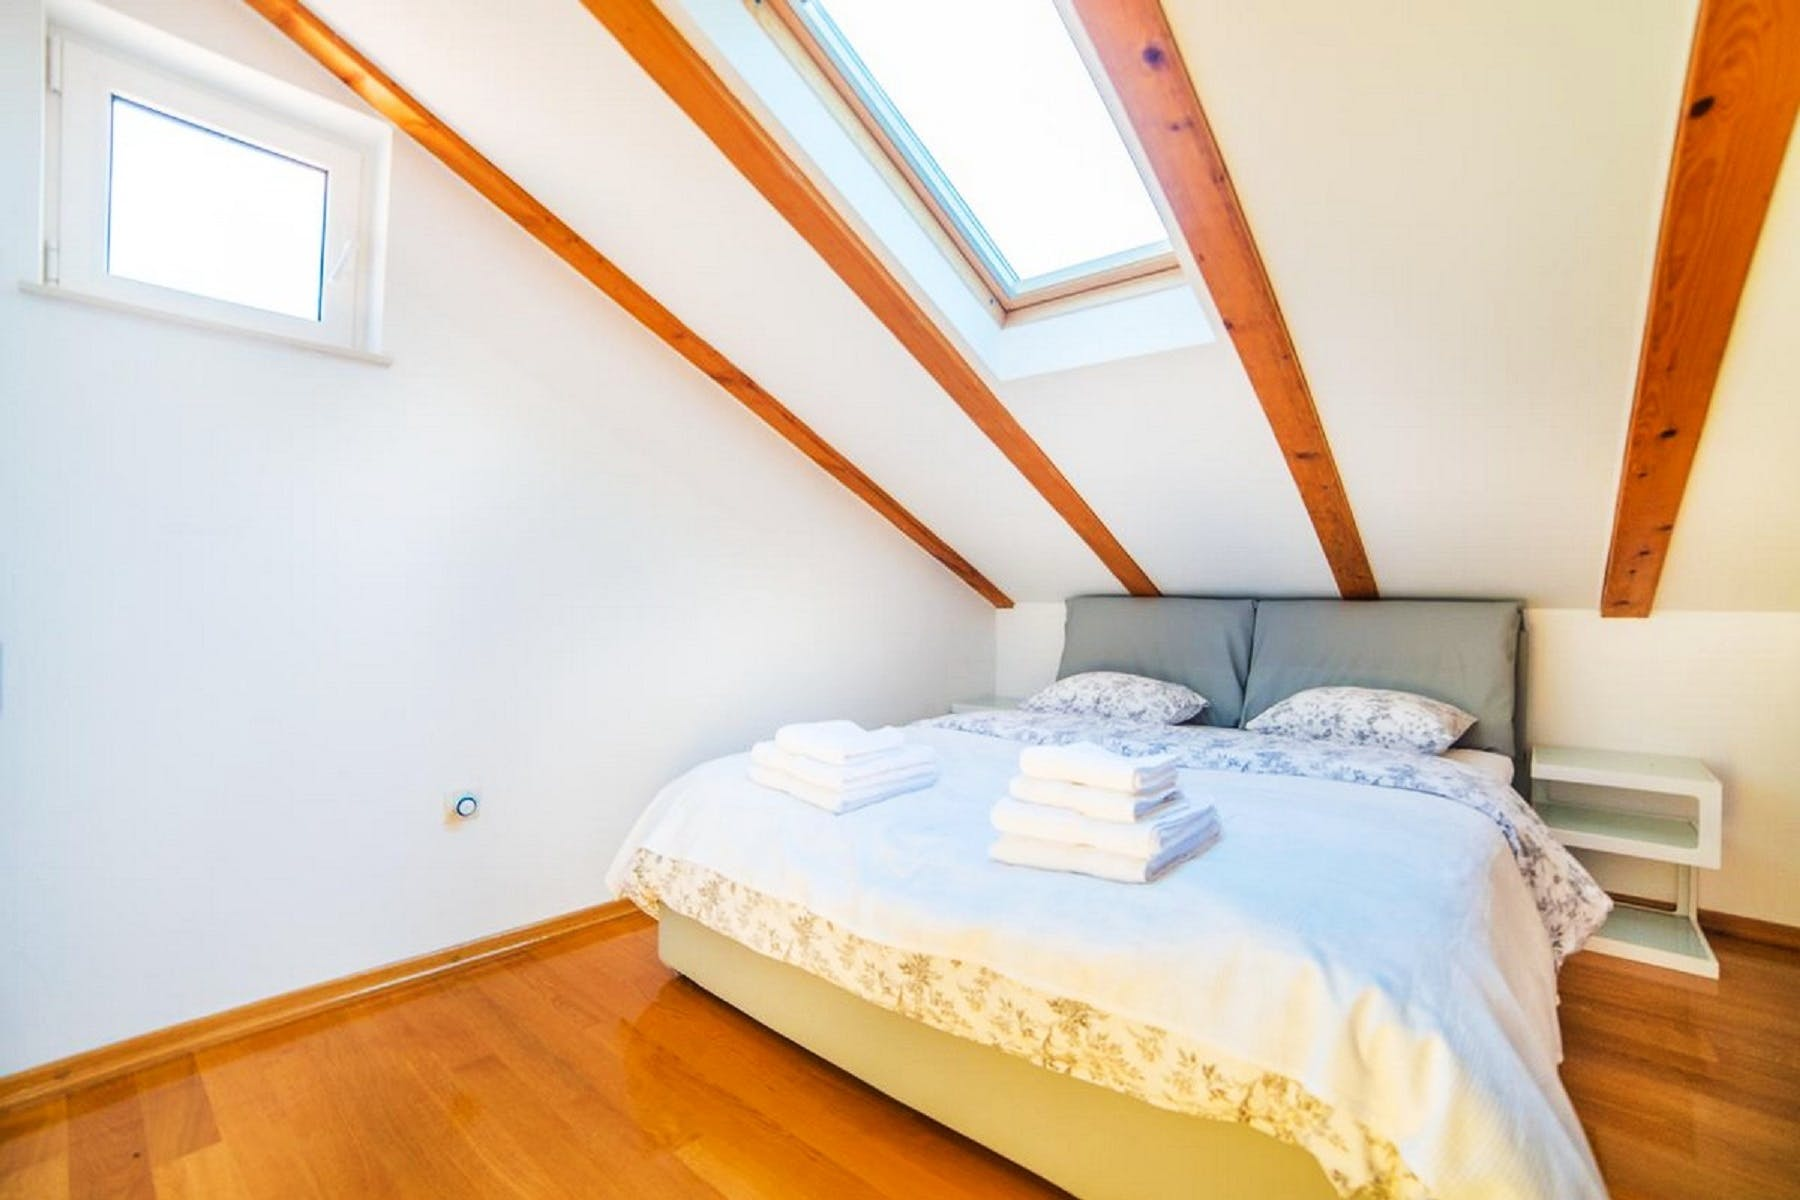 Another angle on the double bedroom